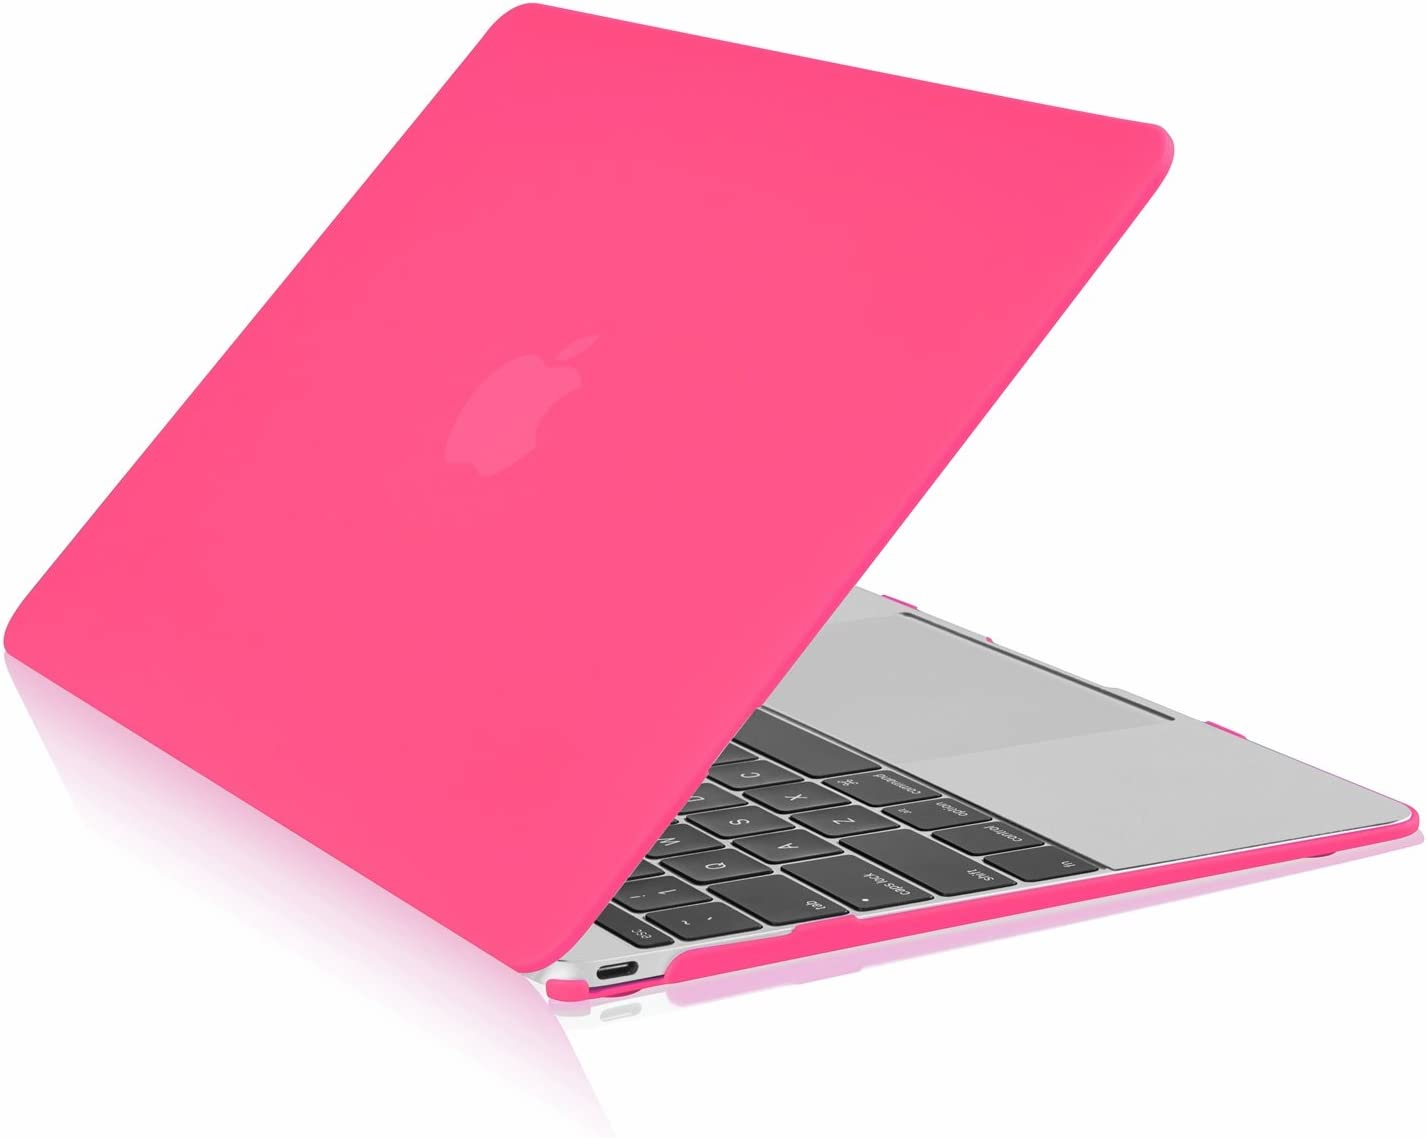 """TOP CASE - Classic Series Rubberized Hard Case Compatible MacBook 12"""" Retina Display Model A1534 (Release 2015) - Hot Pink"""